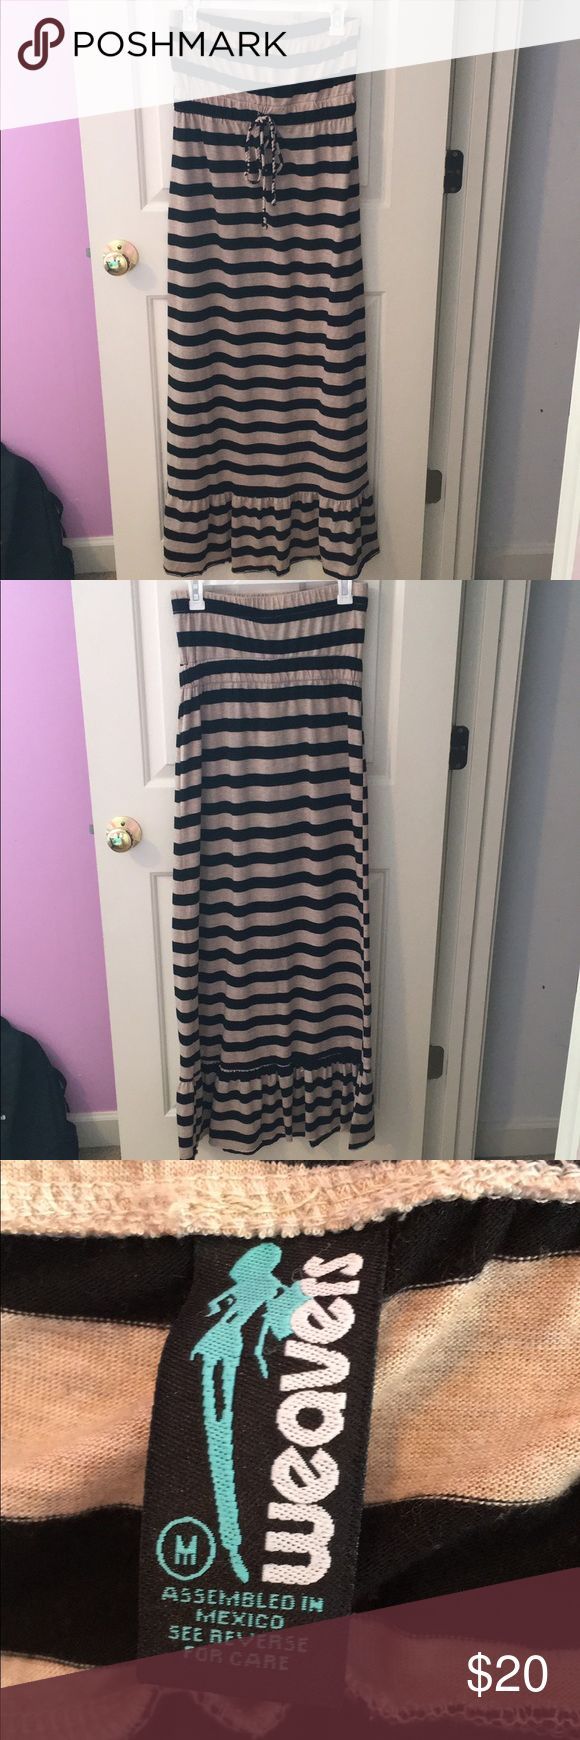 Strapless Black and Tan Striped Max Dress Medium Black and Tan Strapless Maxi Dress- Perfect for summer and the beach!! Only worn once. Dresses Maxi